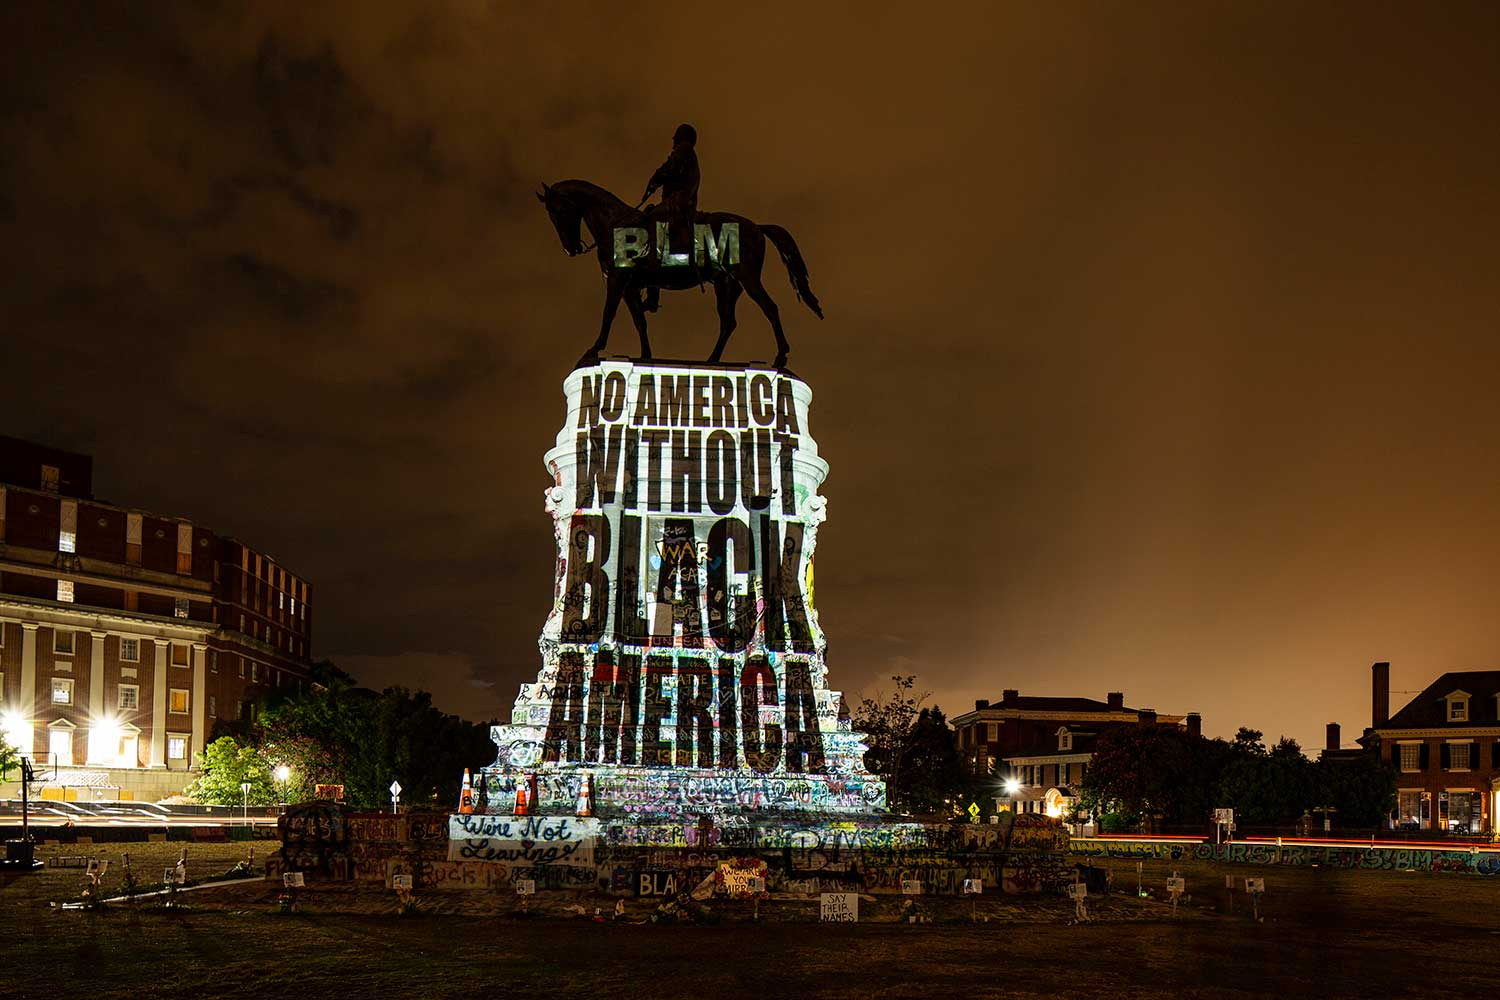 The Robert E. Lee statue at night, with a light installation projecting this message onto it: BLM. No America Without Black America.